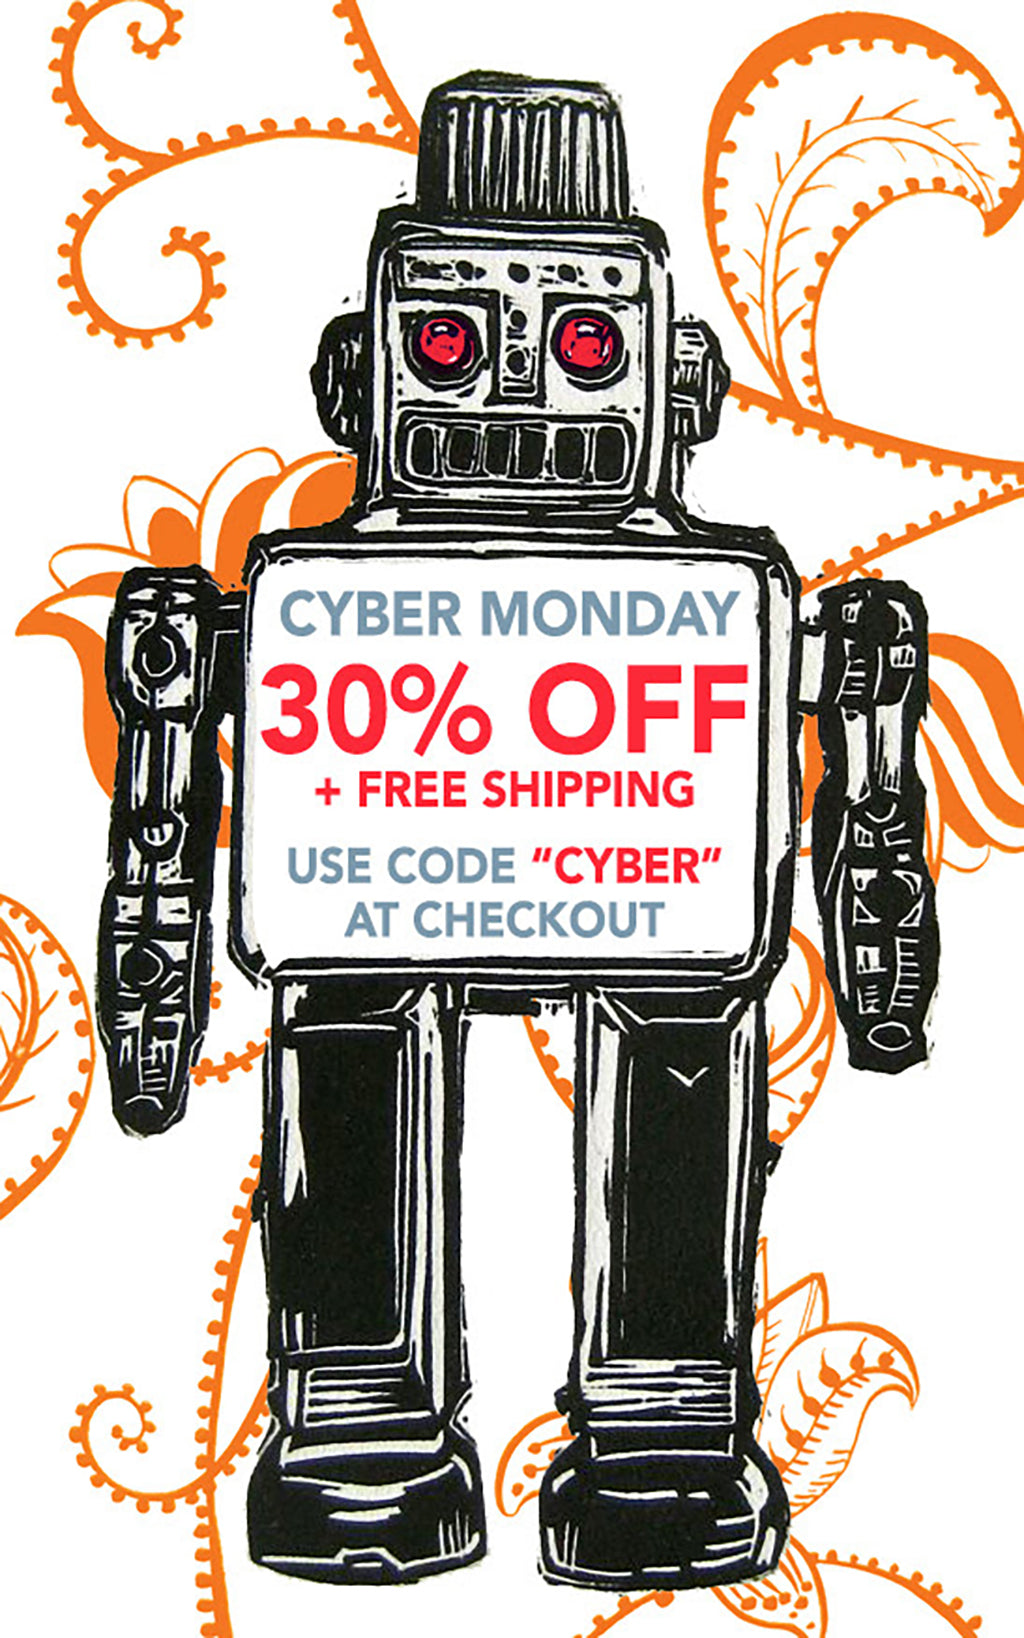 cyber-monday-local-artists-affordable-art-made-in-san-francisco